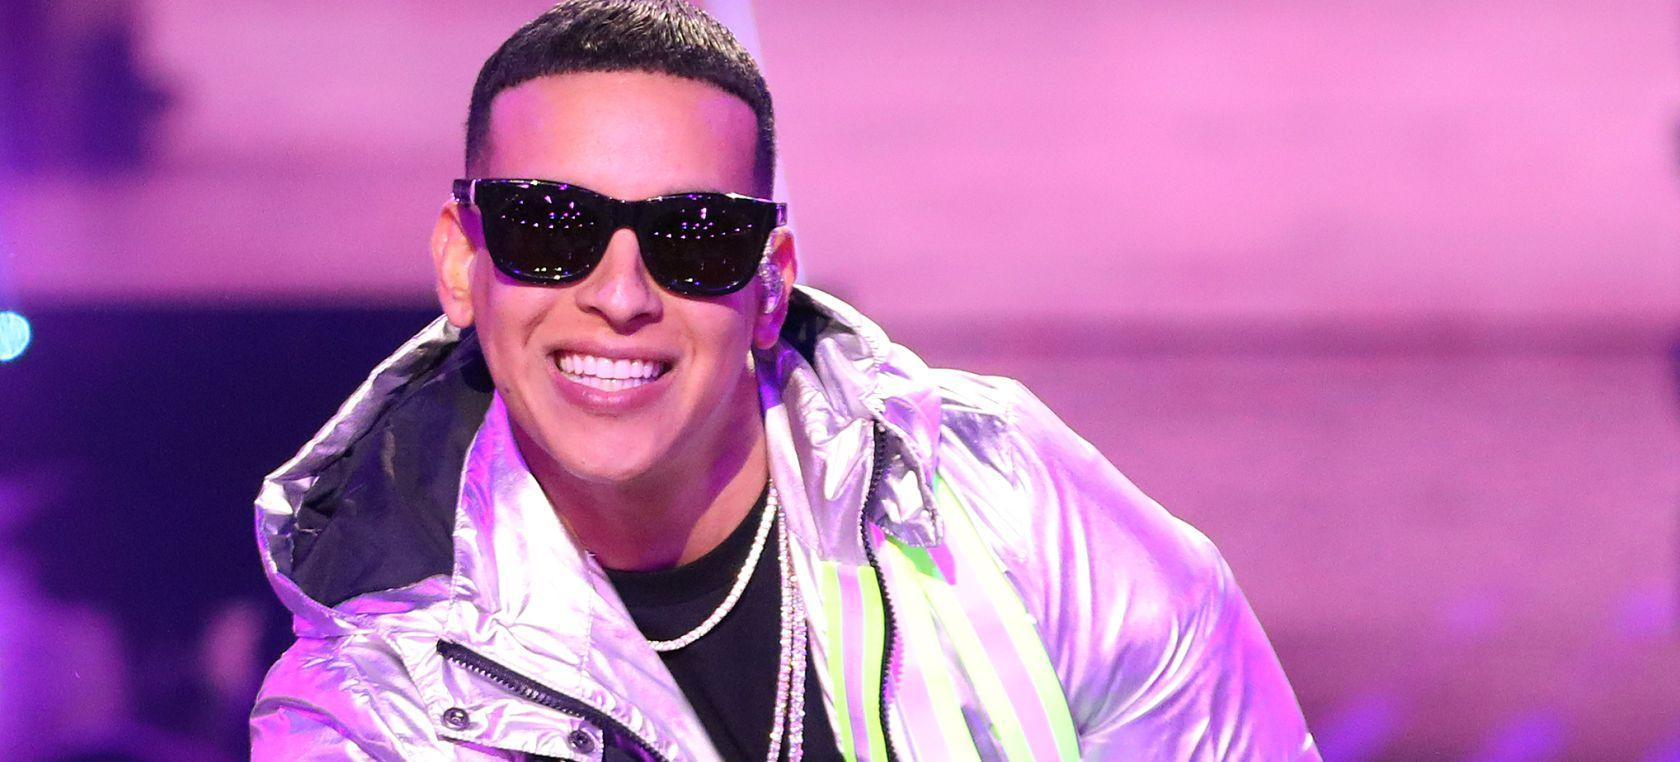 Daddy yankee y j balvin - Brainly.lat